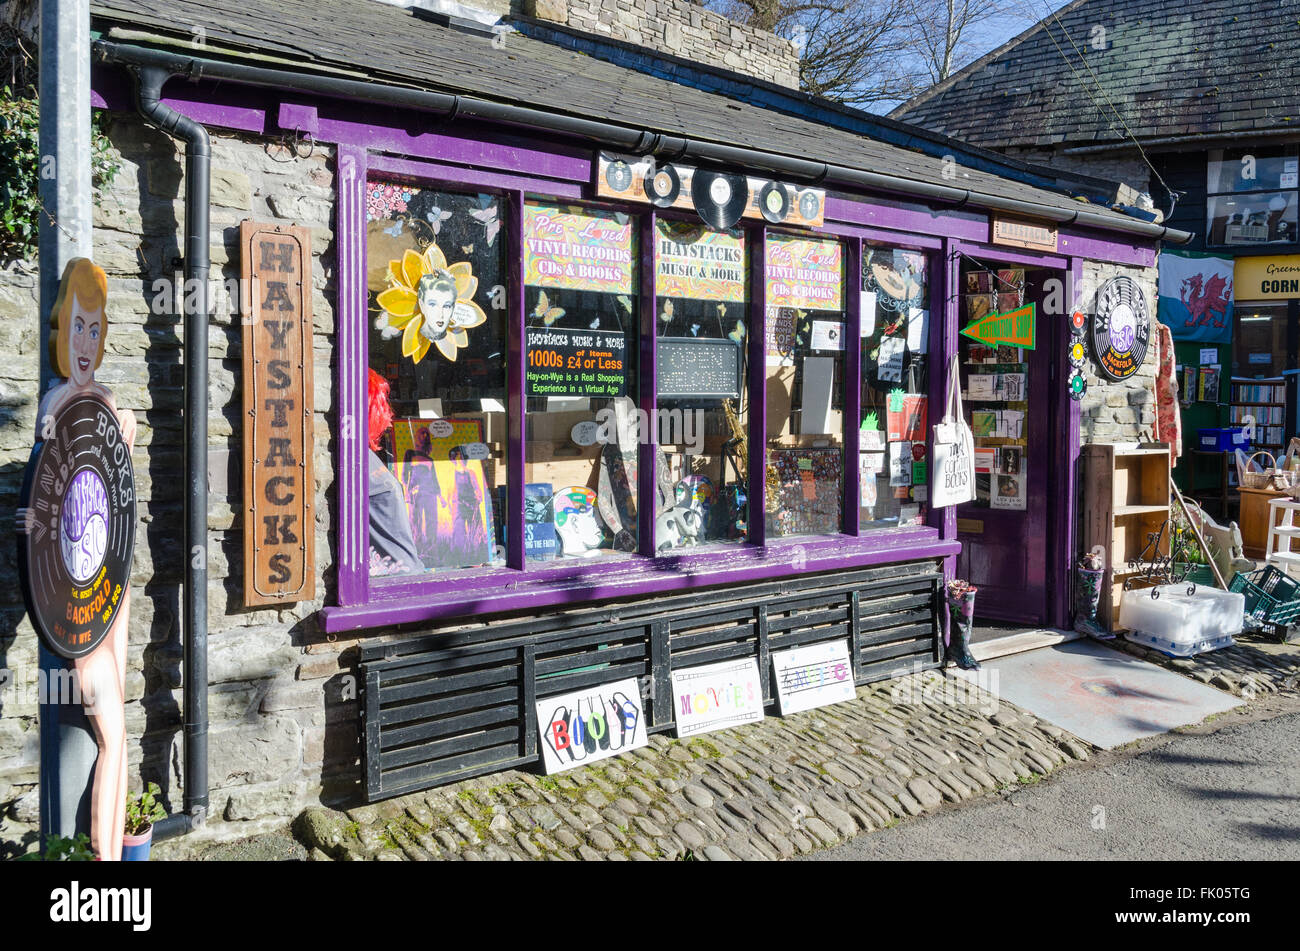 Haystacks second hand vinyl record shop in Hay-on-Wye Stock Photo